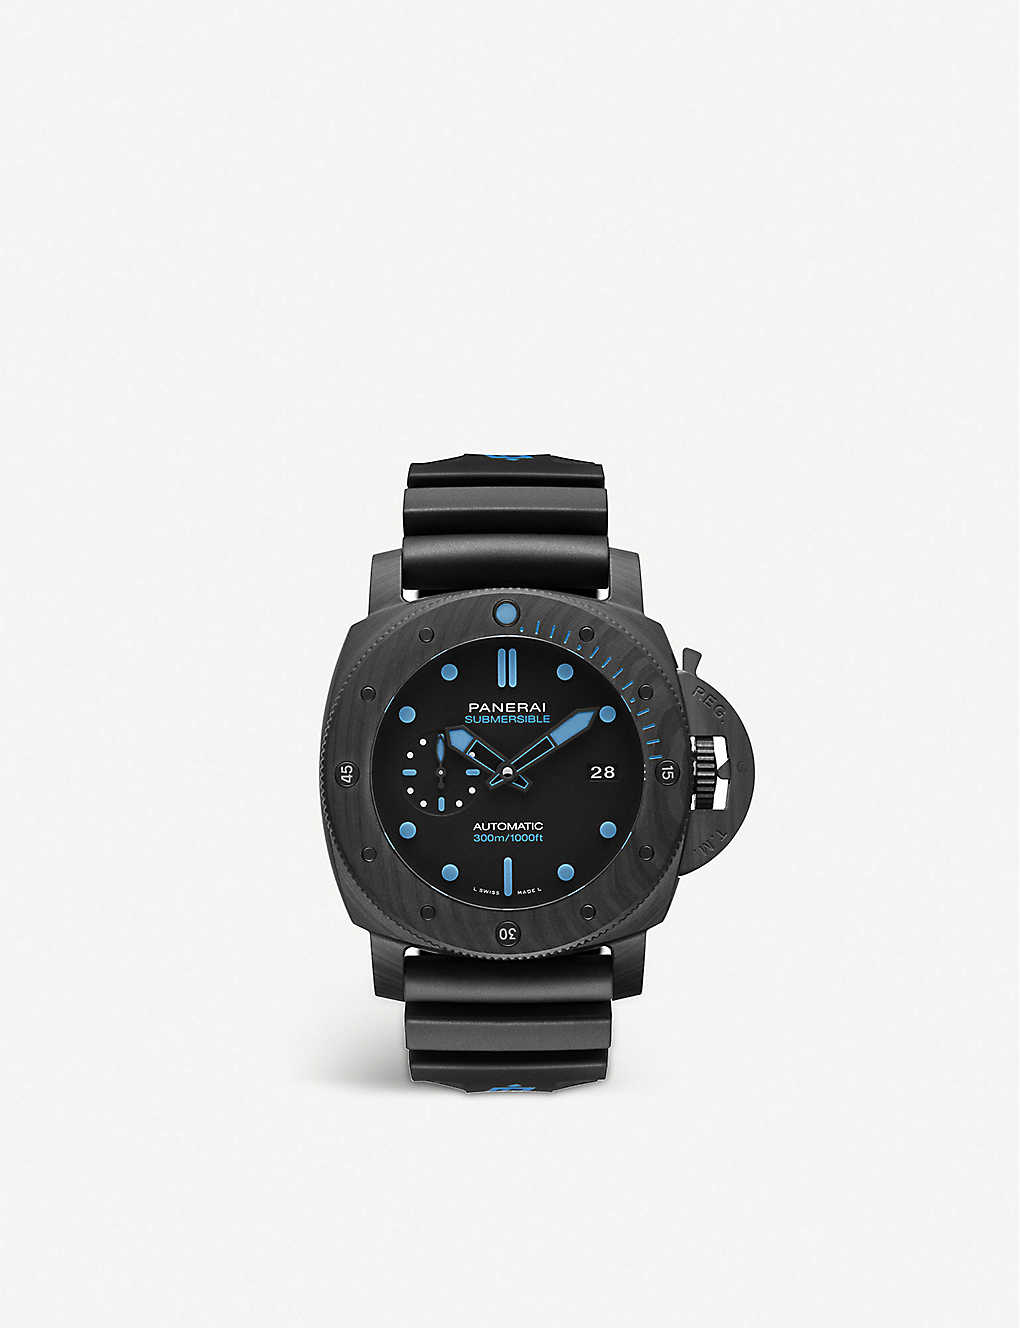 PANERAI: PAM01616 Submersible CARBOTECH™ and rubber watch